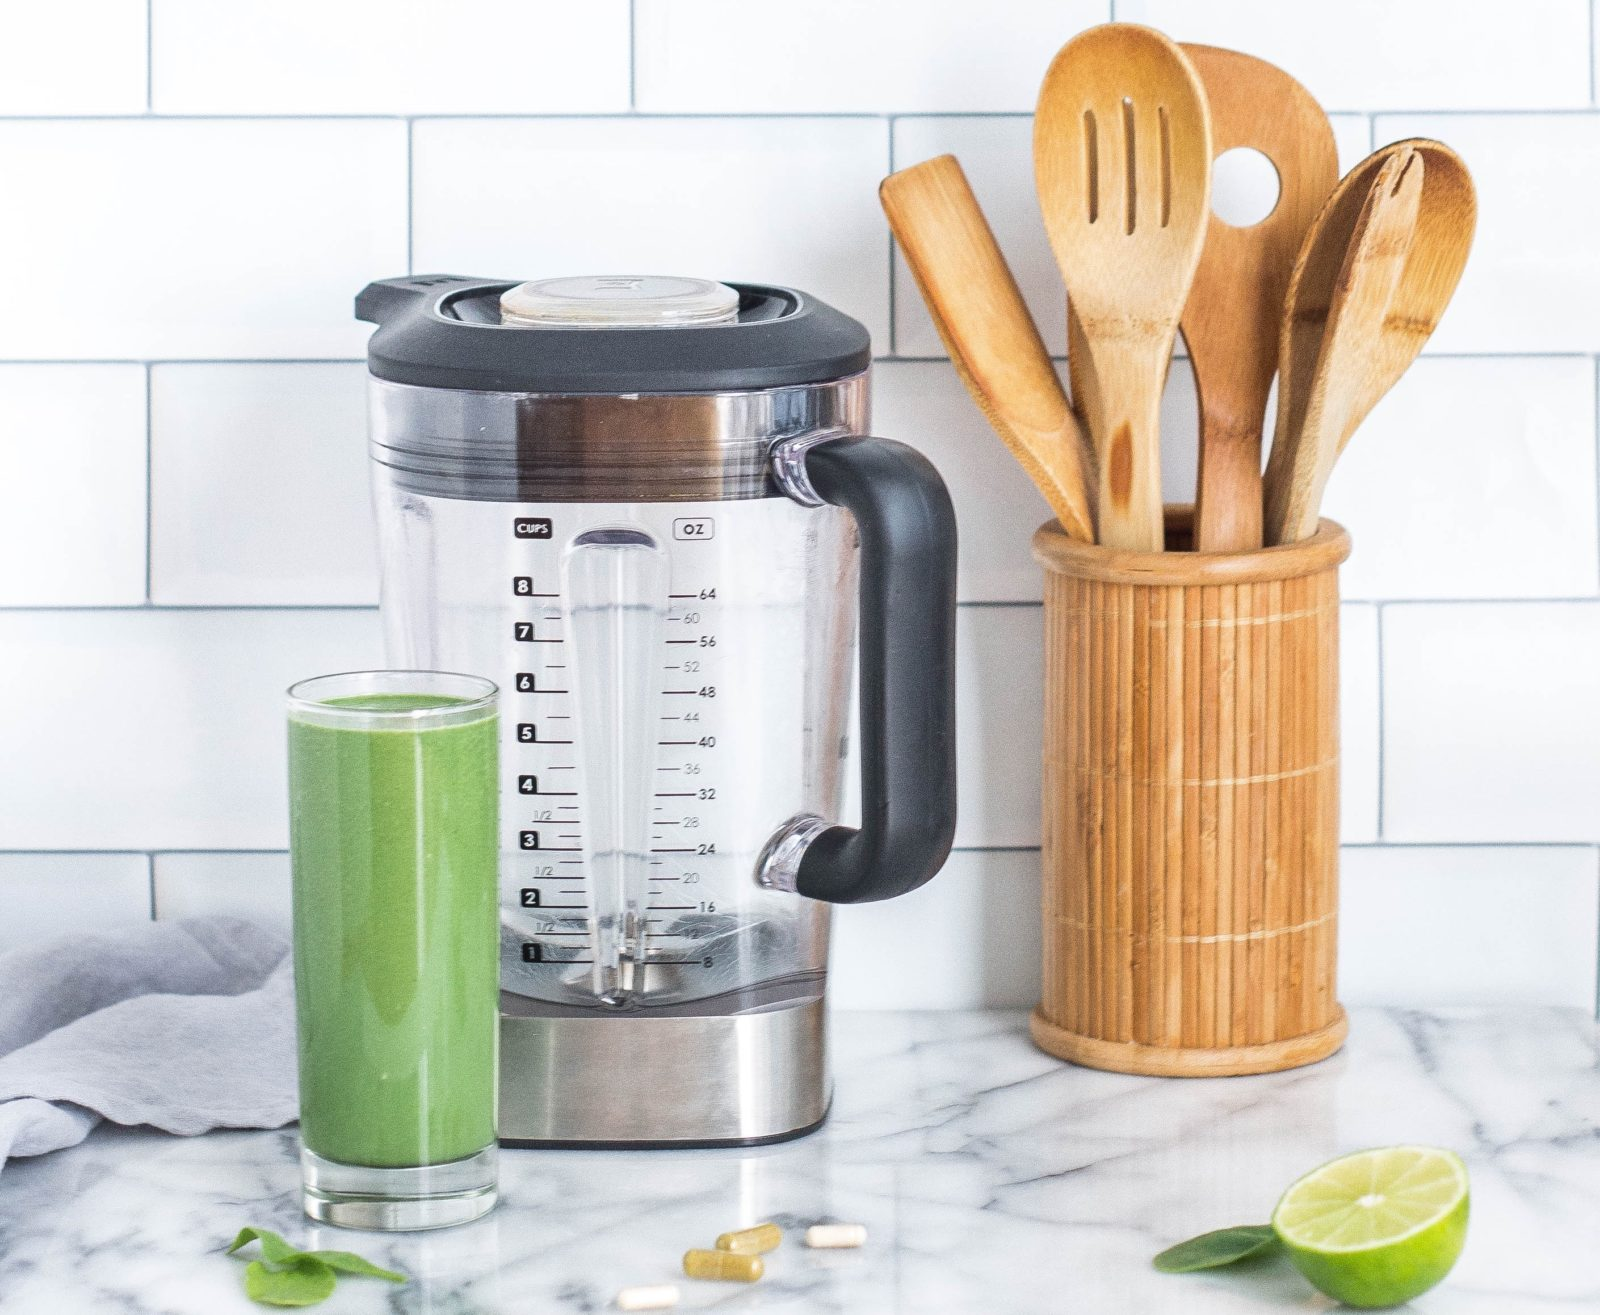 best kitchen appliance brand small appliances 5 ideal tips on how to choose the for you